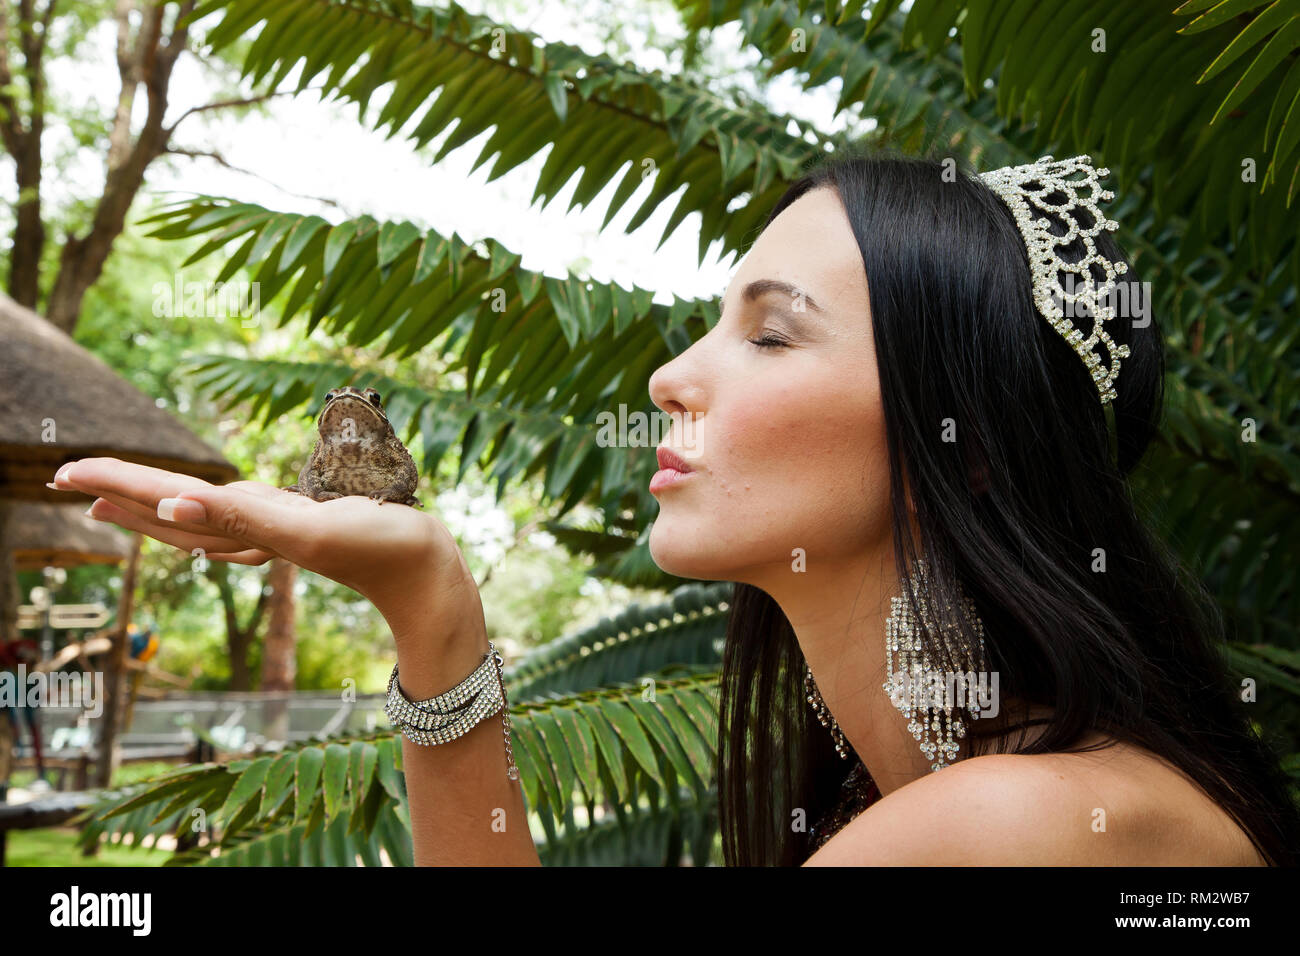 Girl Girl Kissing Frog Stock Photos Girl Frogsing Frog Stock Images - Alamy-9880